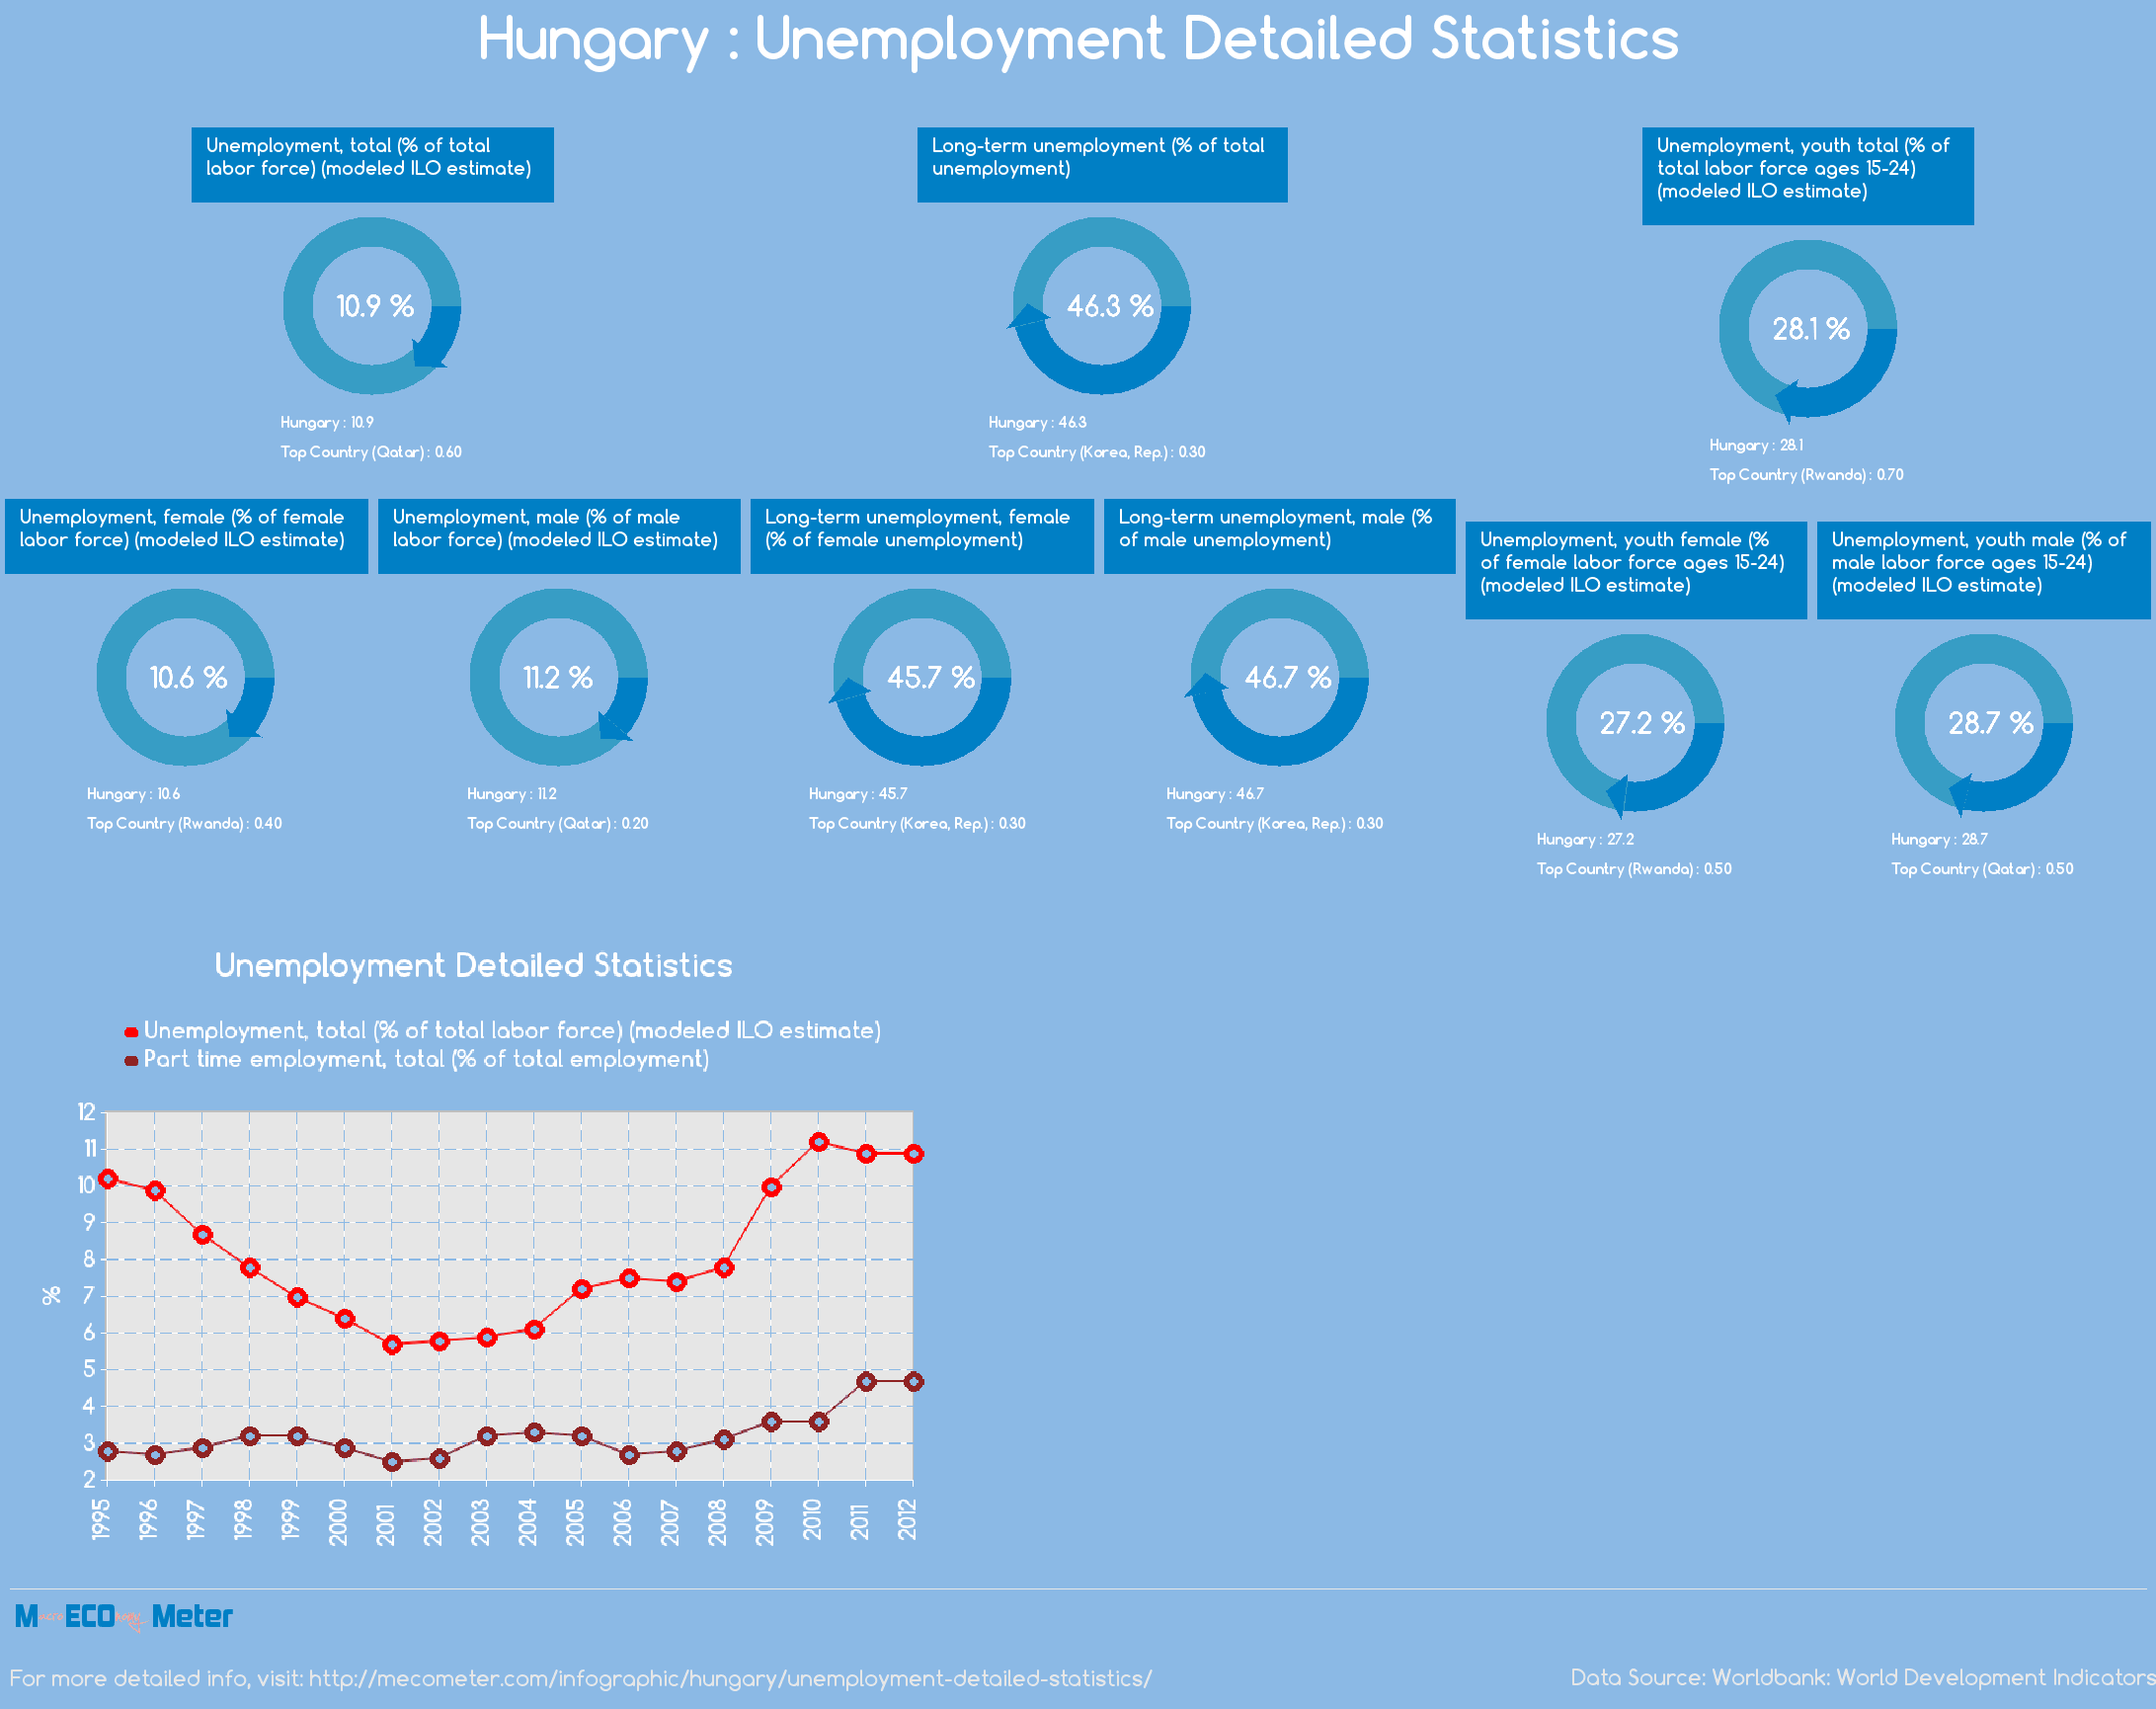 Hungary : Unemployment Detailed Statistics